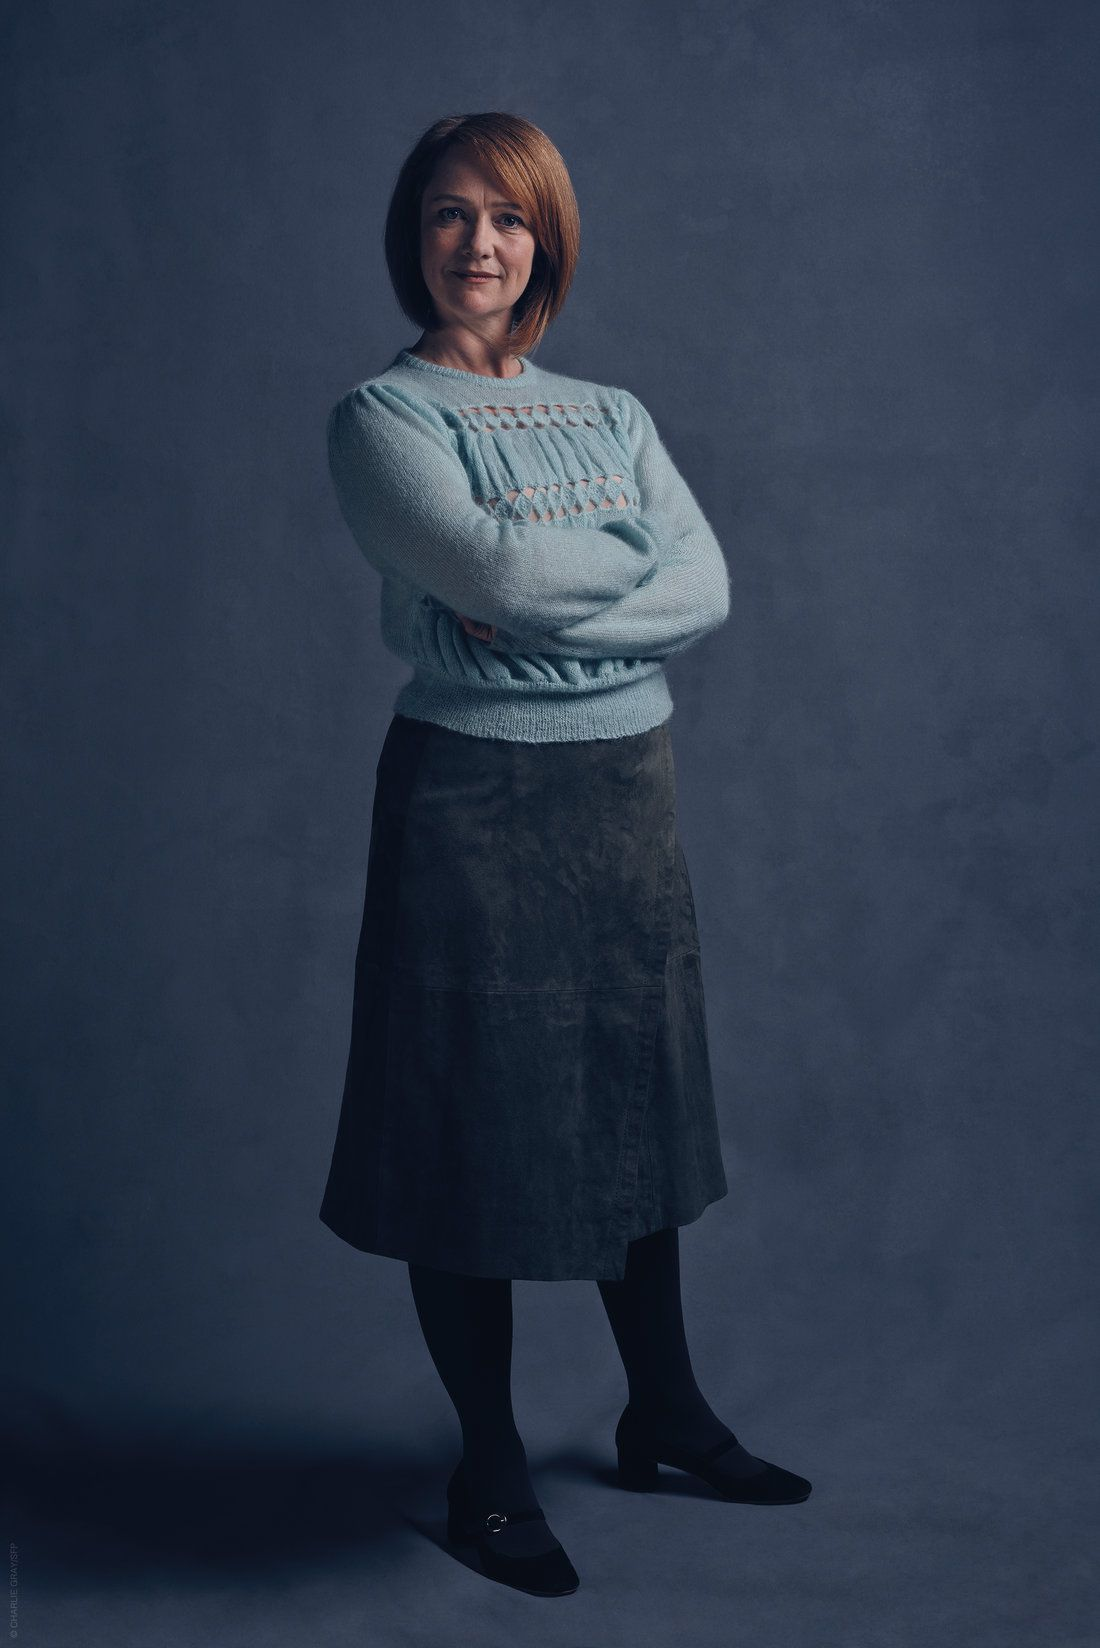 adult ginny potter